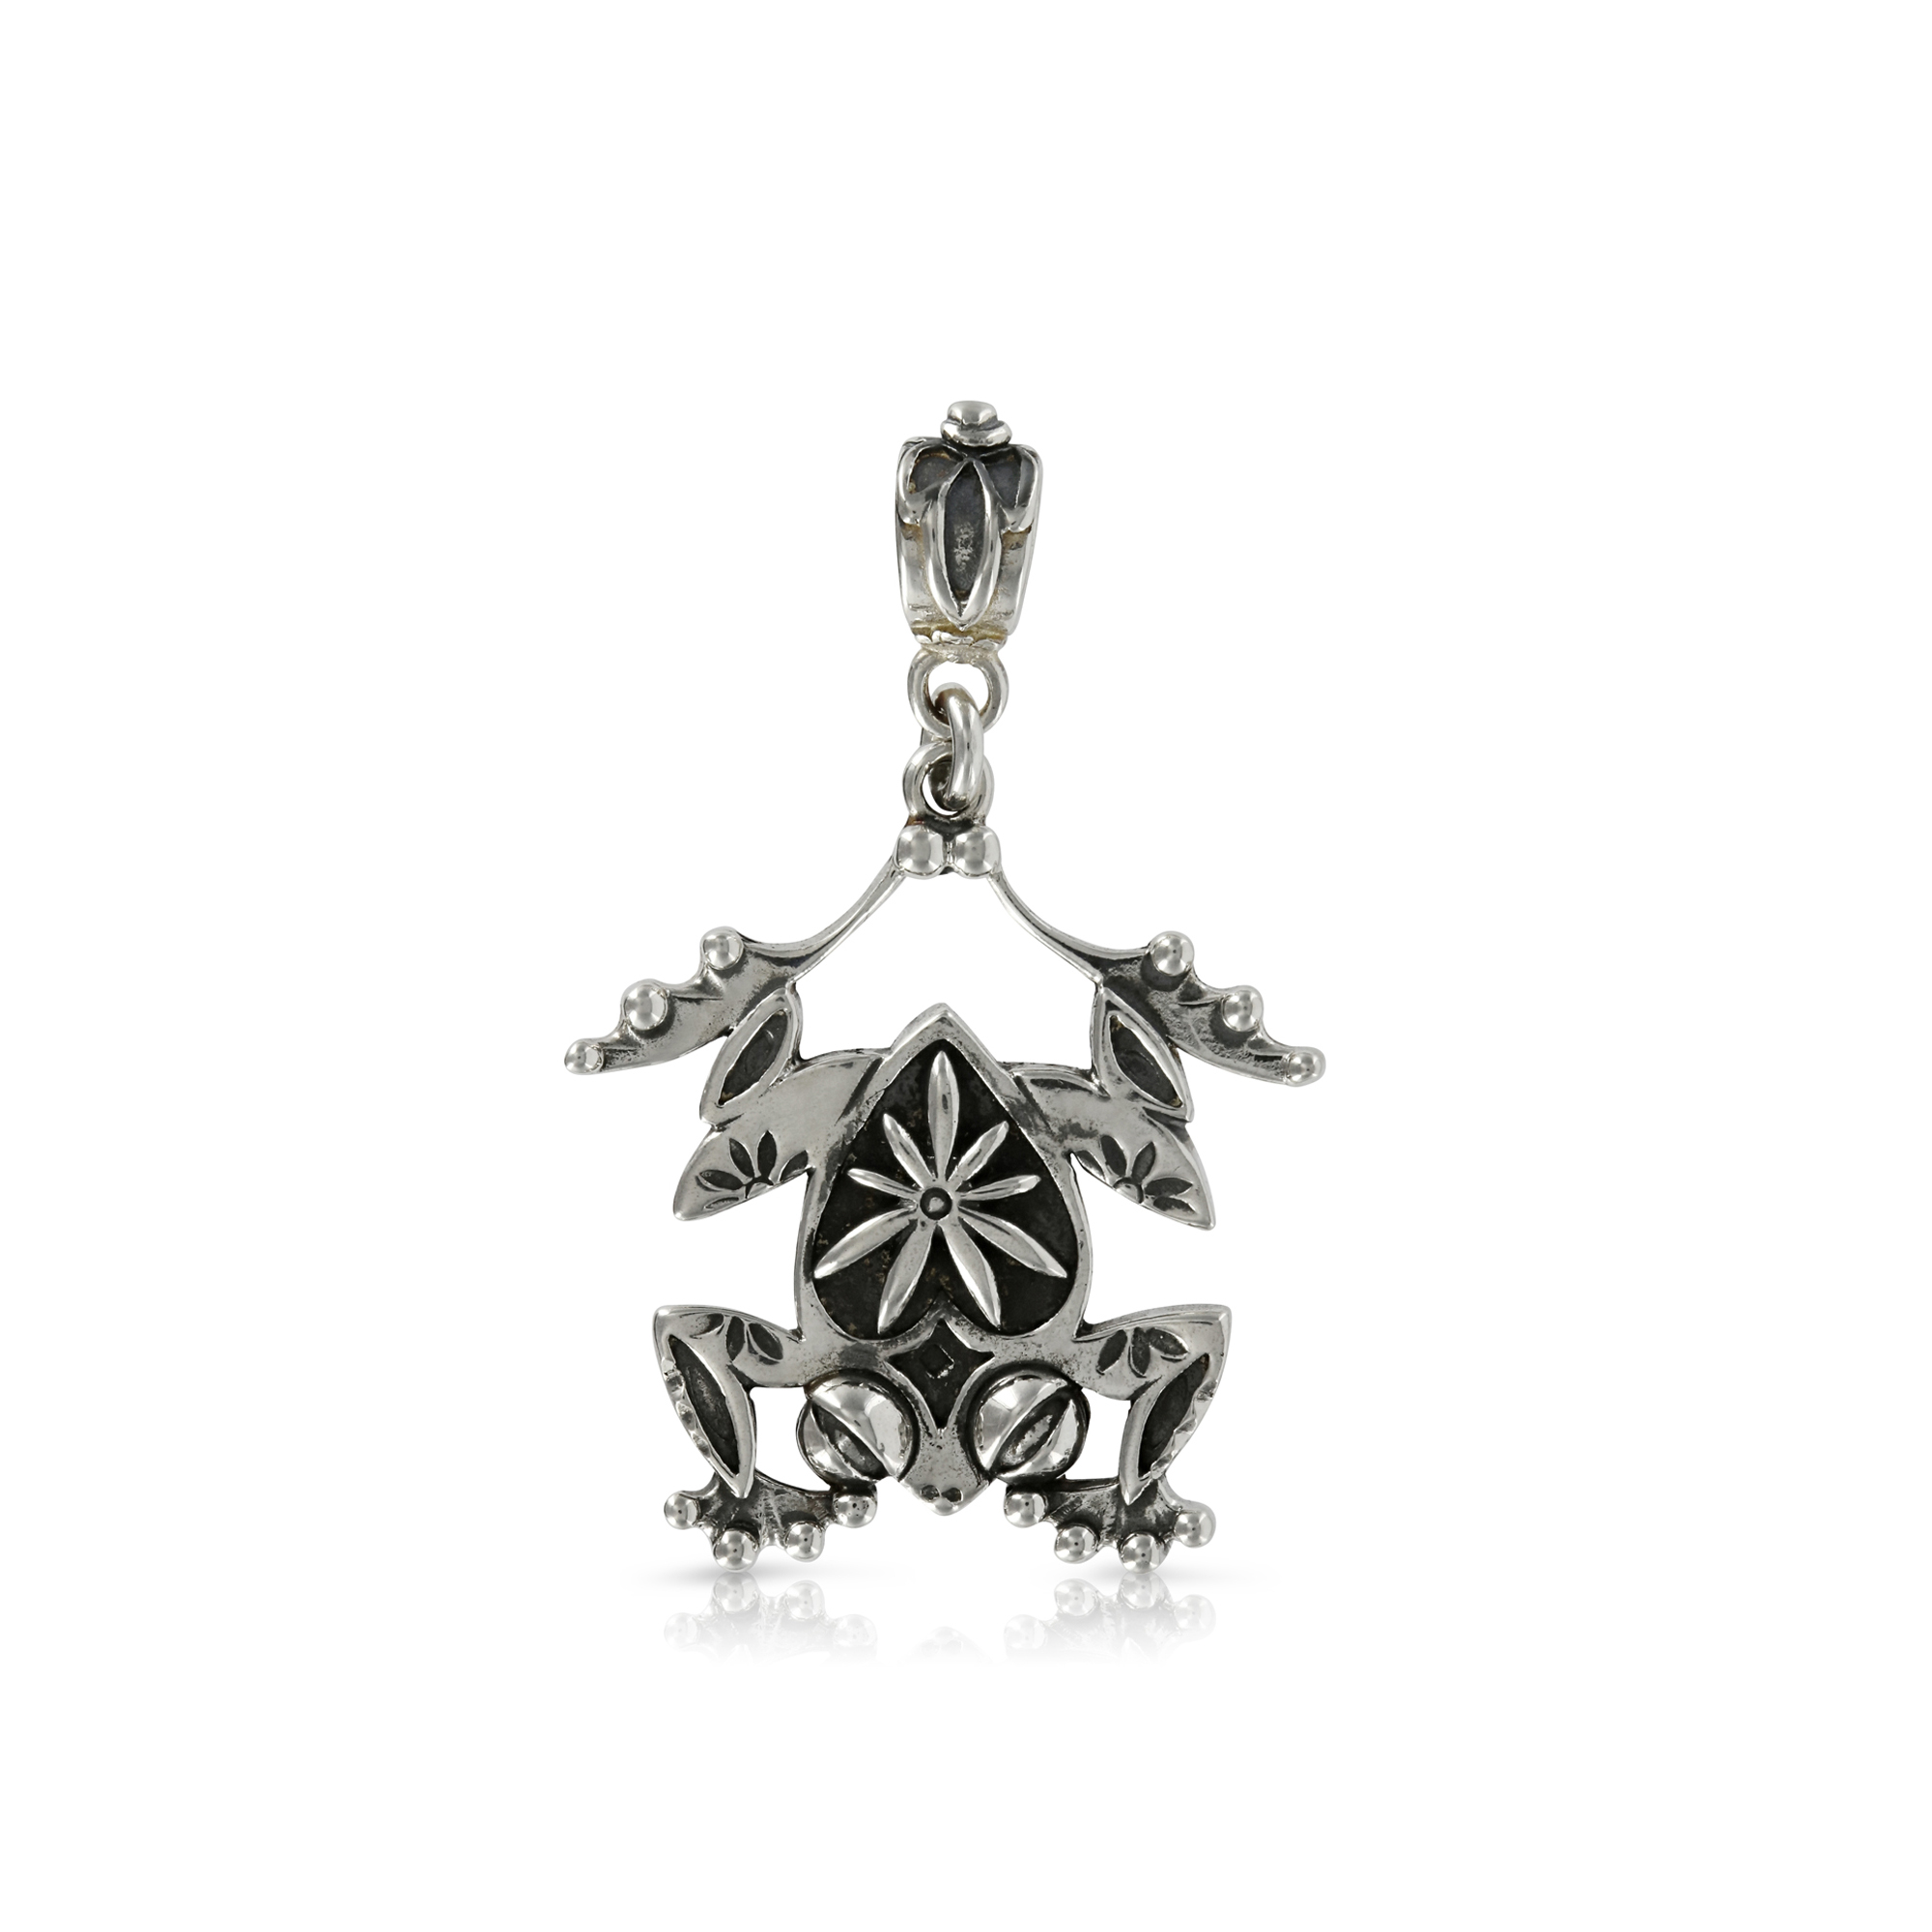 Silver frog pendant prey jewellery silver frog pendant by prey jewellery mozeypictures Image collections